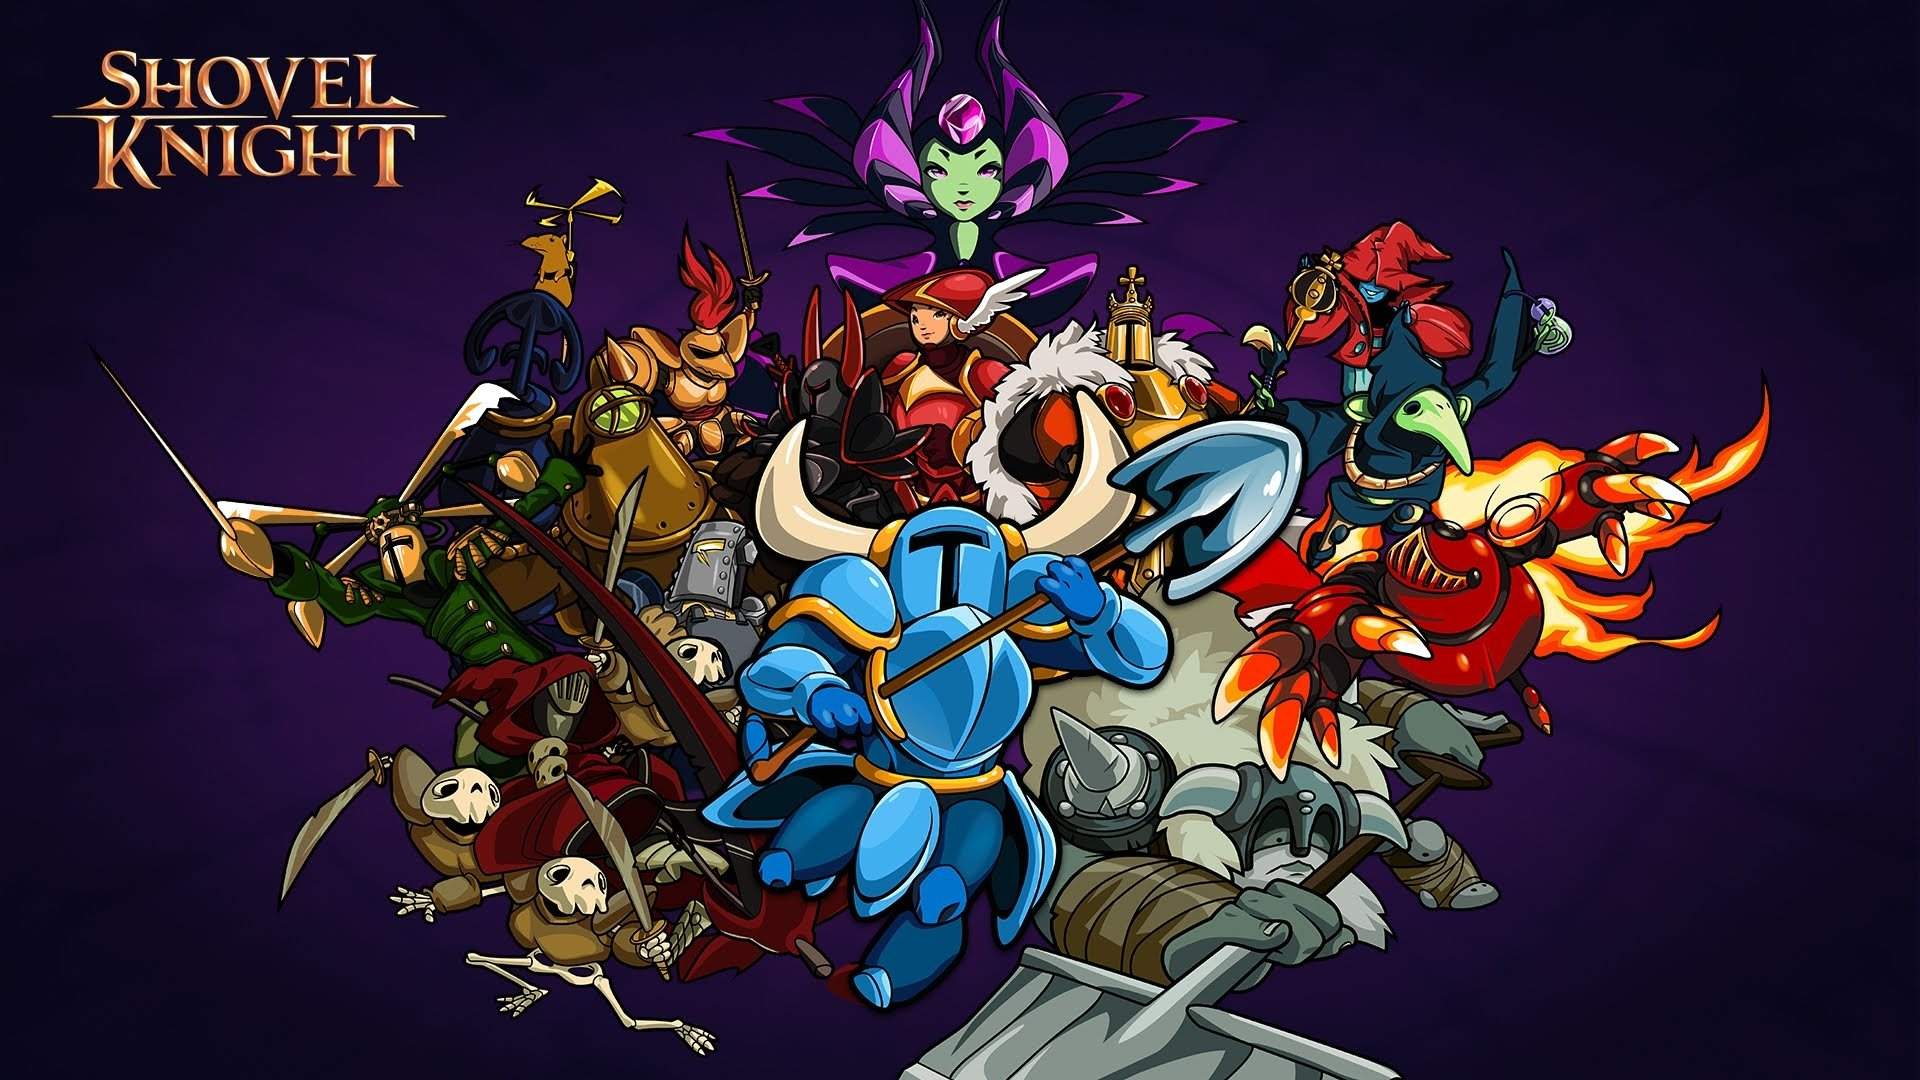 3 Specter Knight Shovel Knight Hd Wallpapers Background Images Wallpaper Abyss